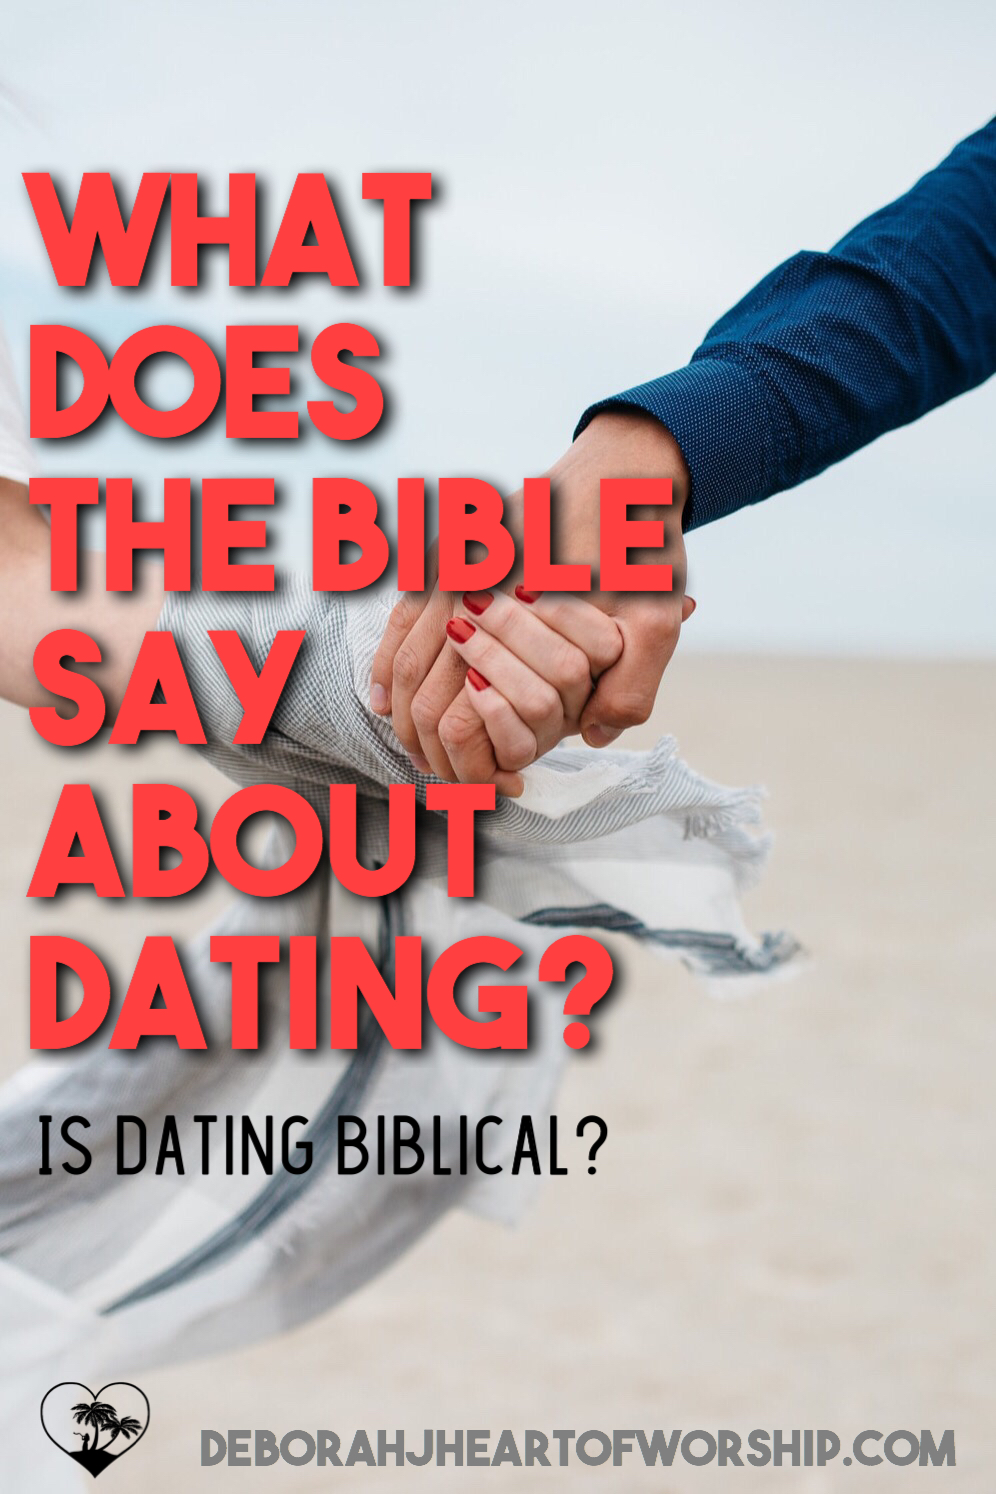 What does the Bible say about dating?